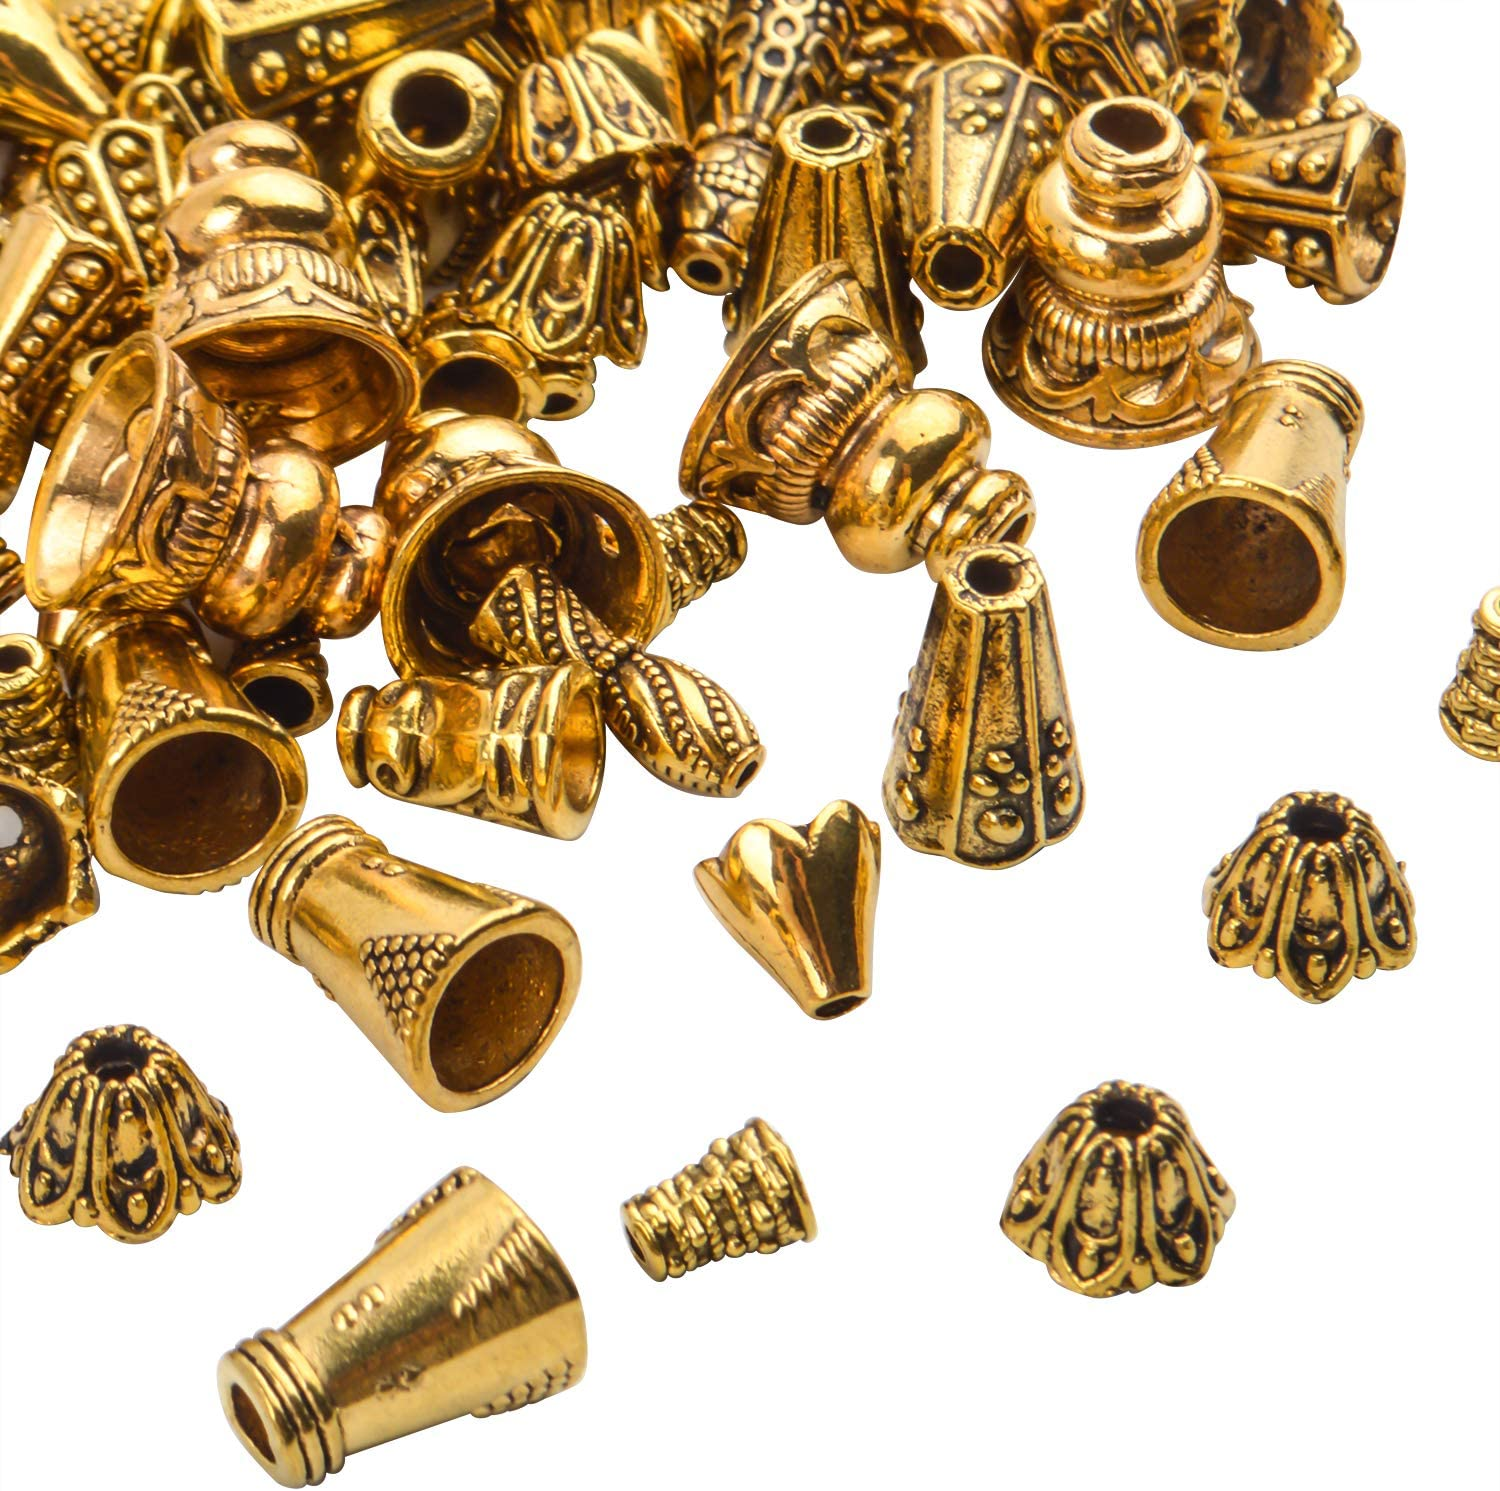 0.05 EURpc 1.5 mm 40 end caps for ribbons in antique bronze